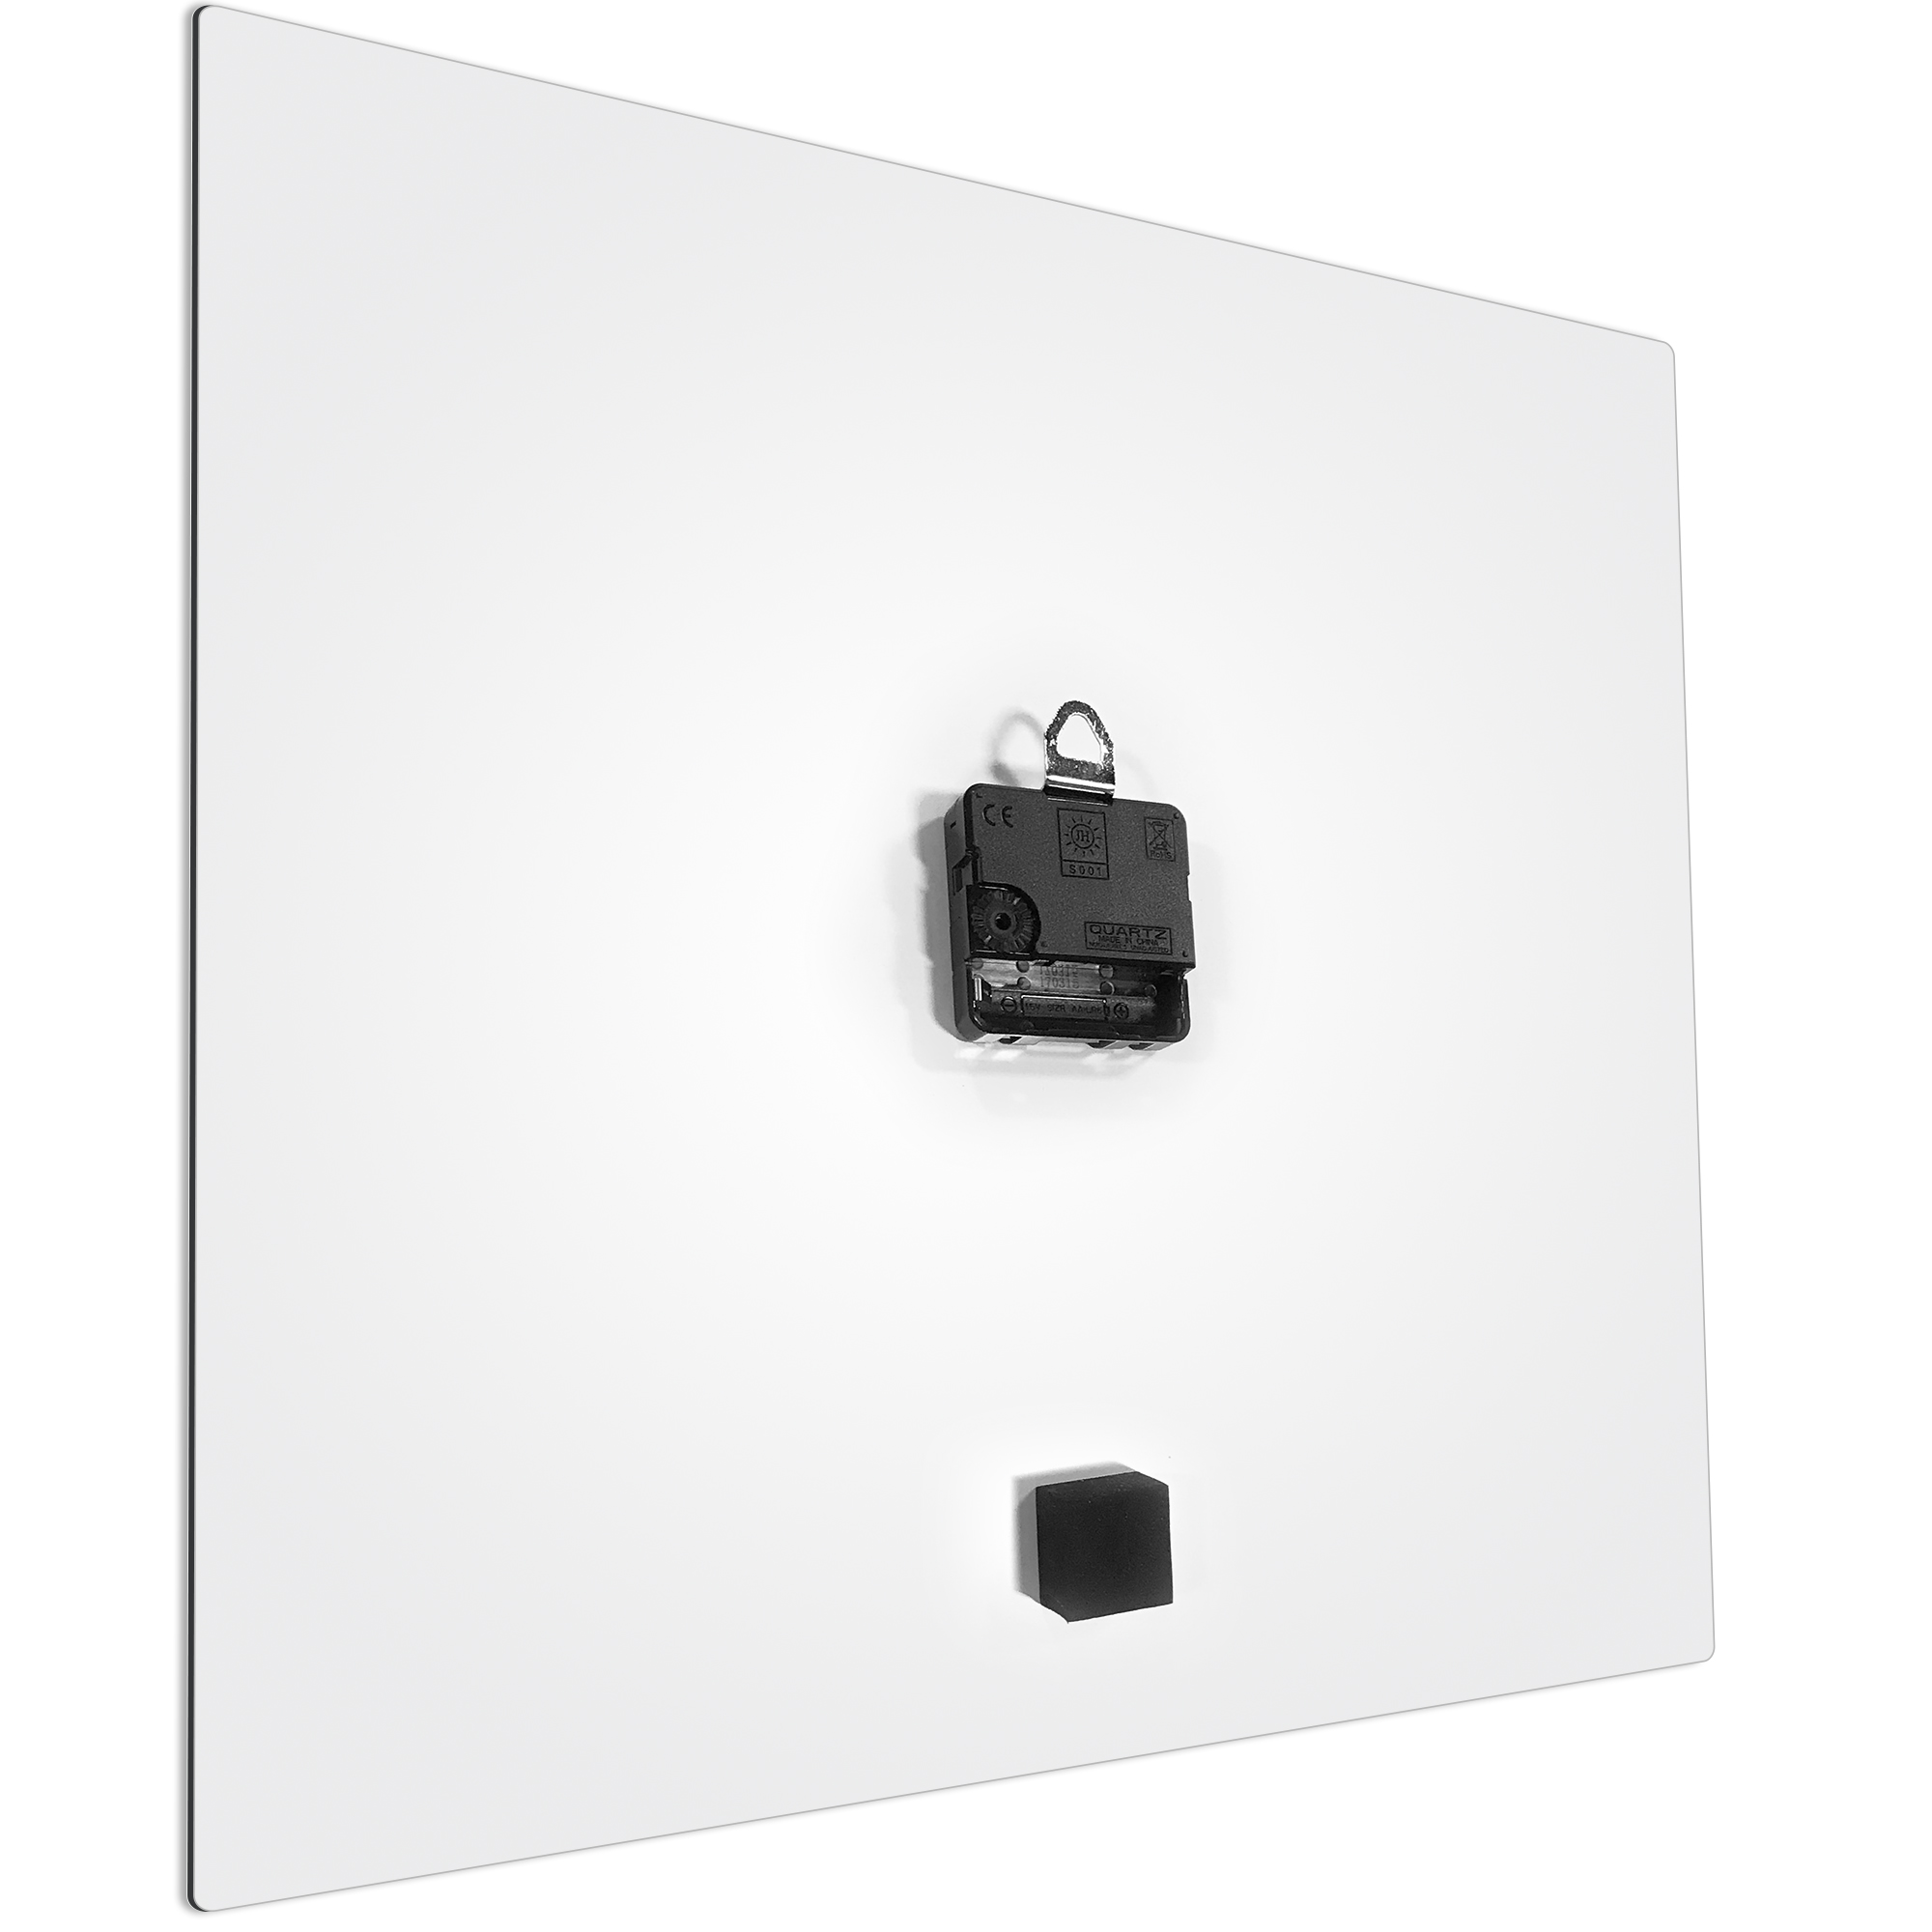 Grayout Black Square Clock Large by Adam Schwoeppe Contemporary Clock on Aluminum Polymetal - Alternate View 3